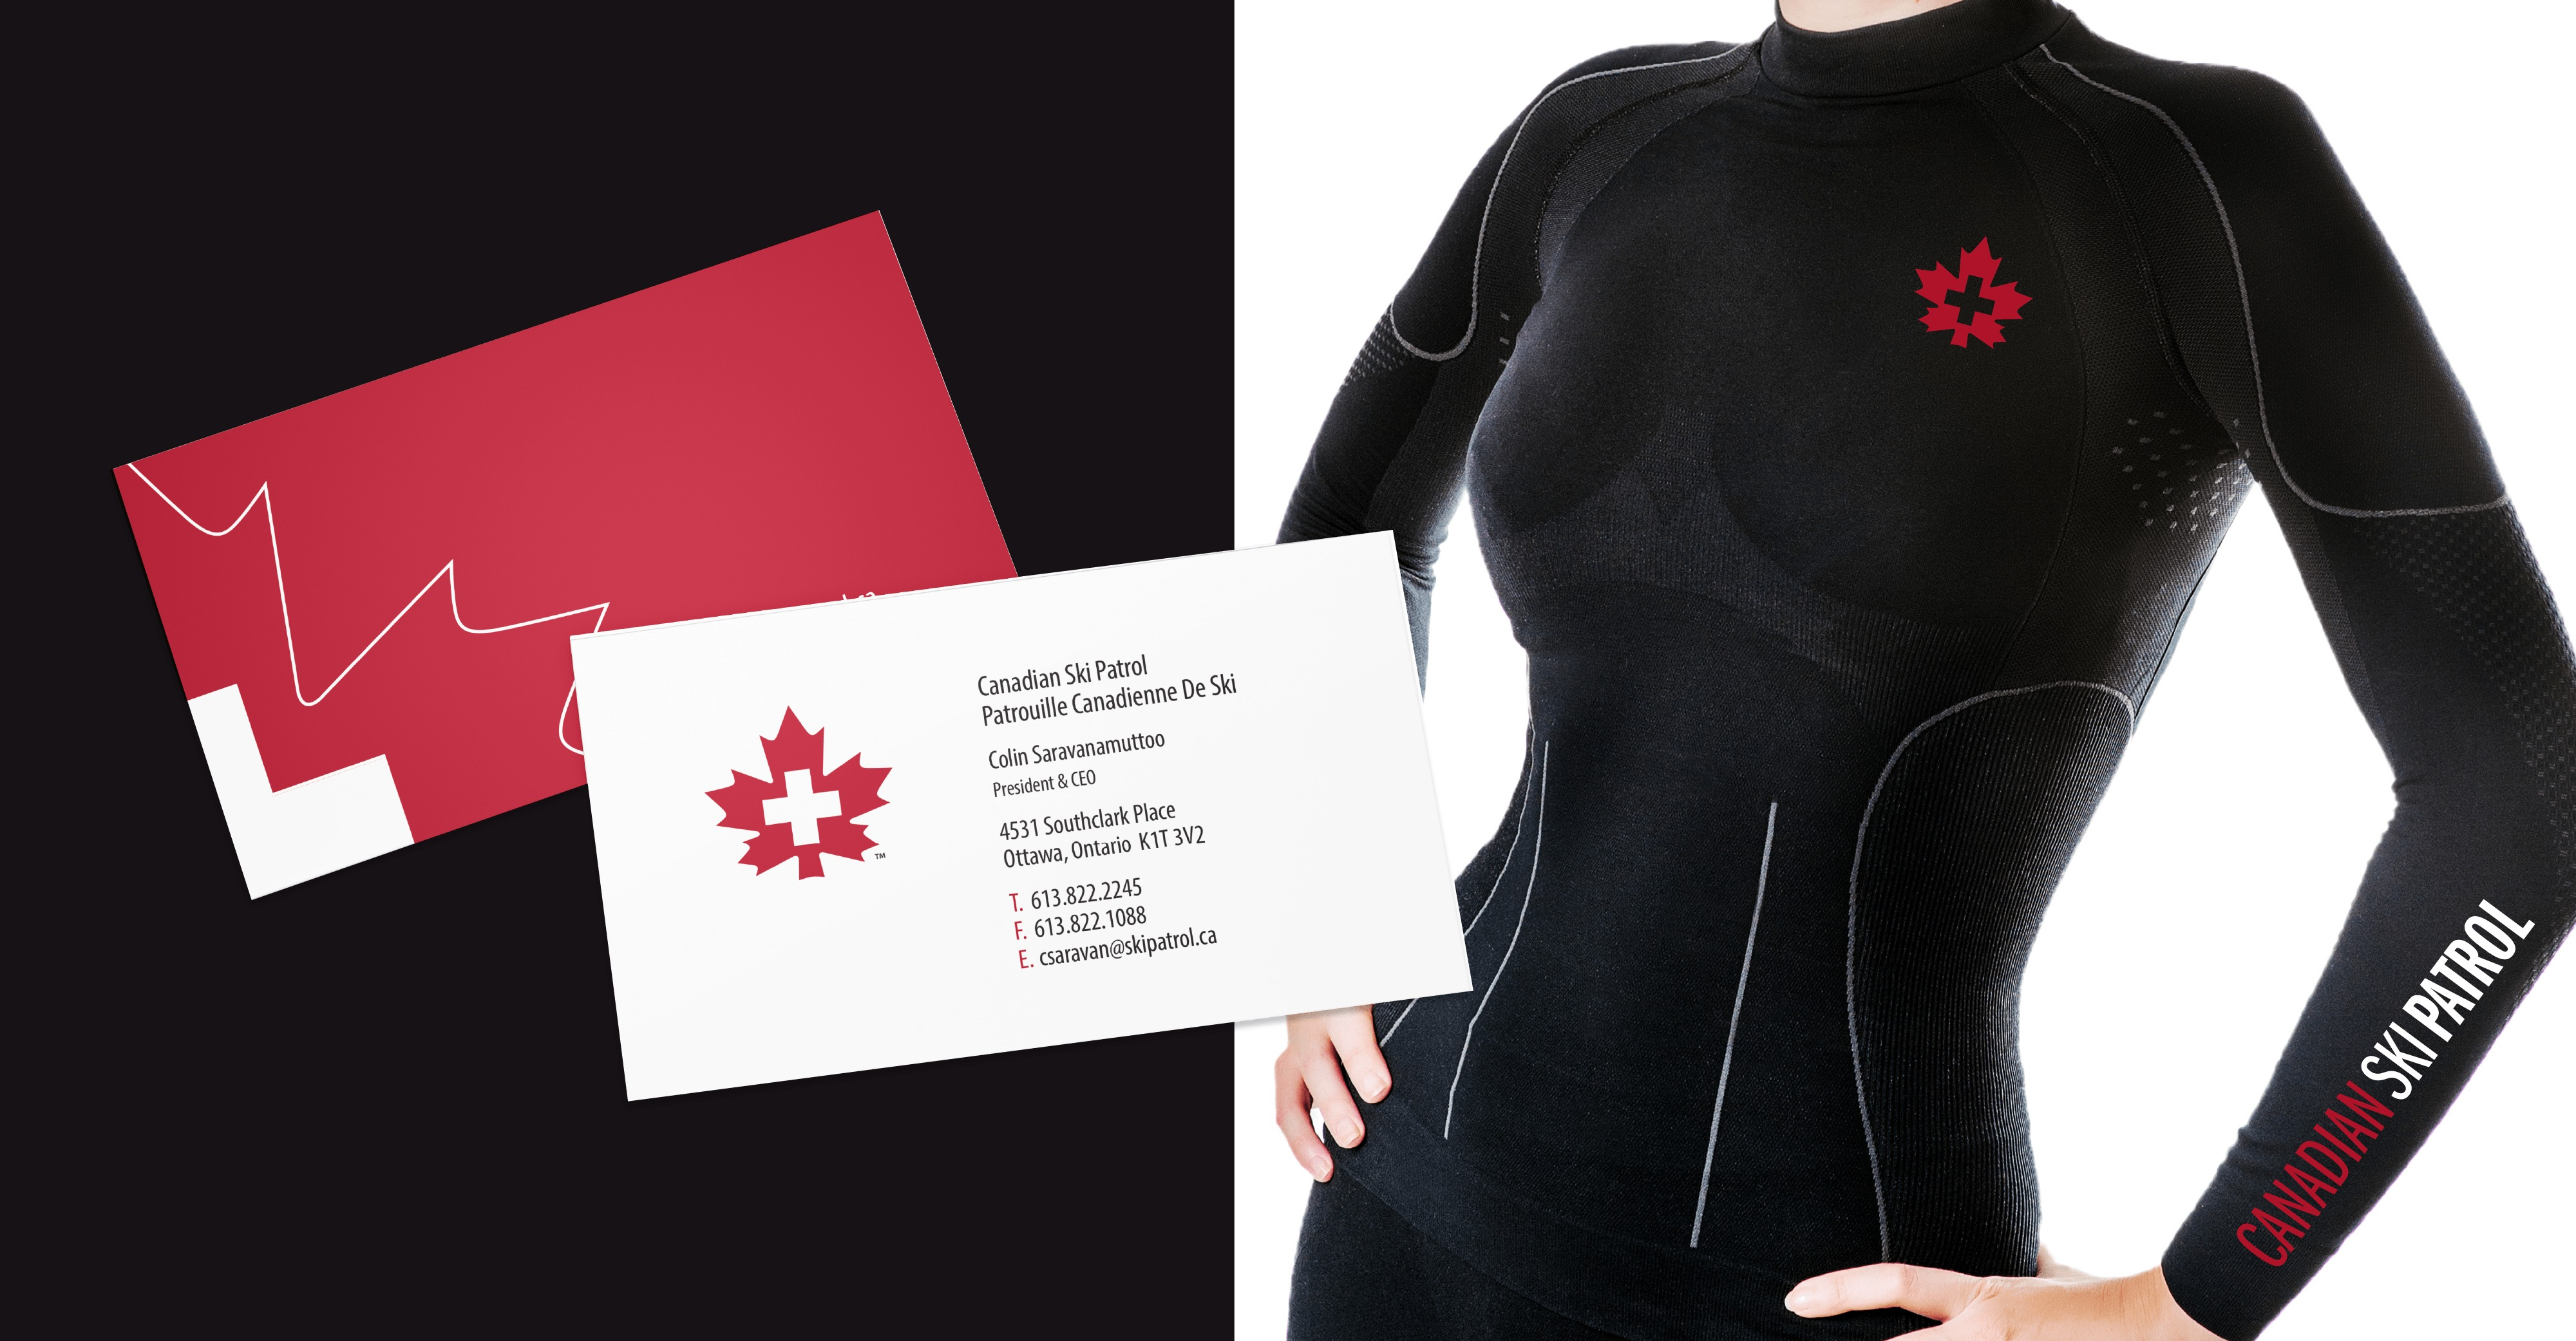 Canadian Ski Patrol business card and T-Shirt Design